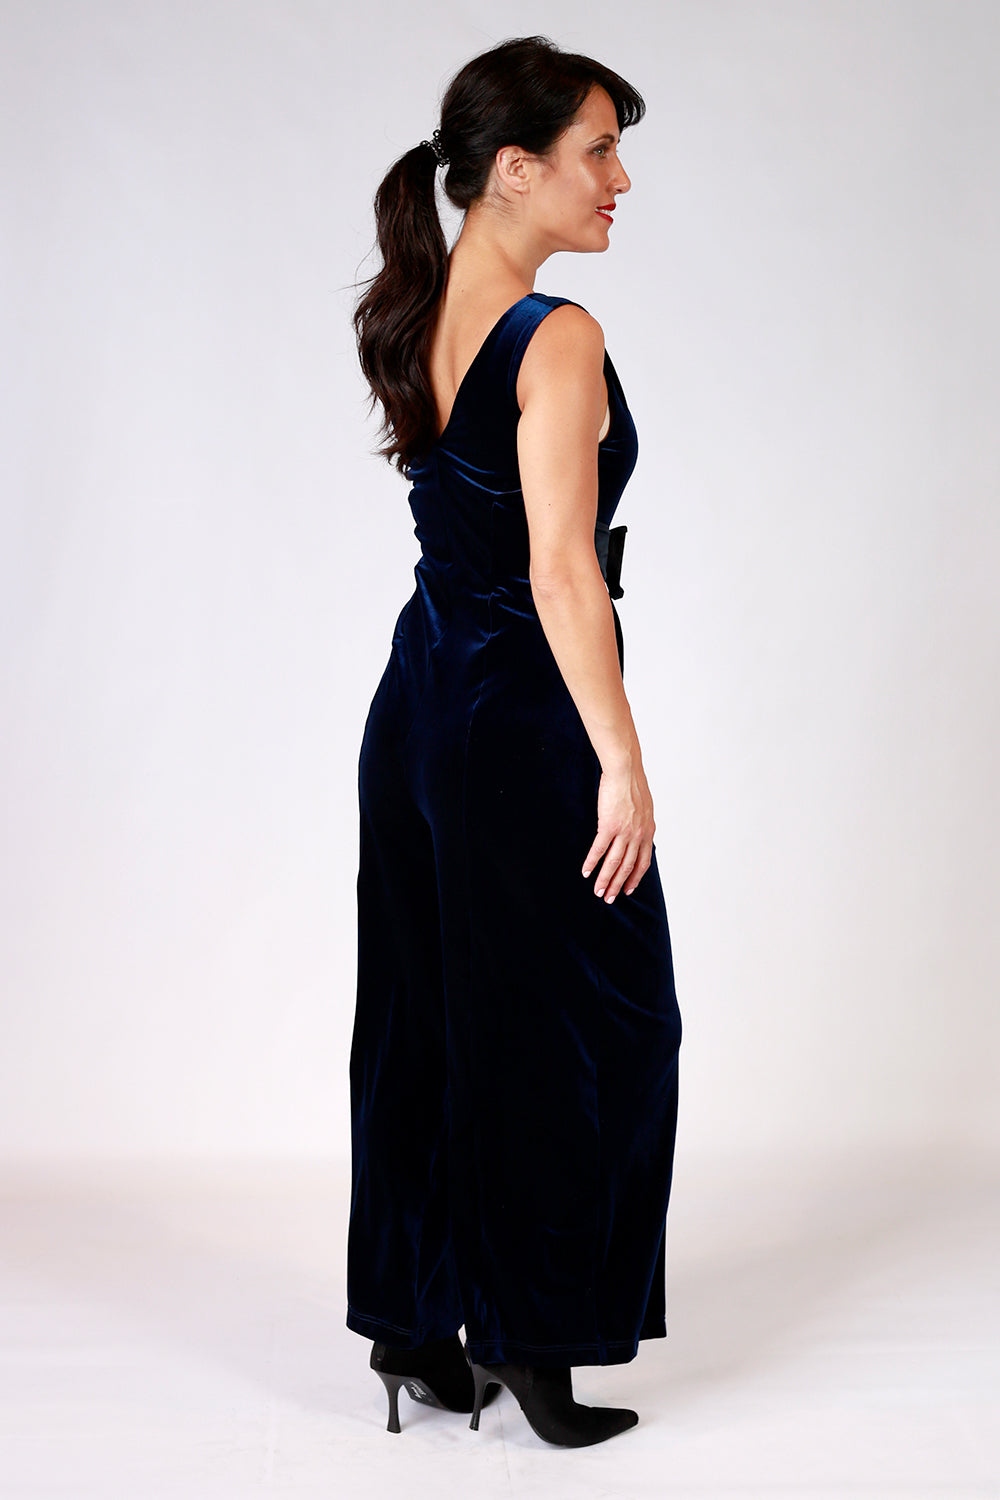 Andie's Encore Velvet Jumpsuit | Annah Stretton AW20 | Gypsy Fare Collection | Navy velvet jumpsuit | Shot on Model | Annah Stretton Designer | Designer NZ | Annah Stretton